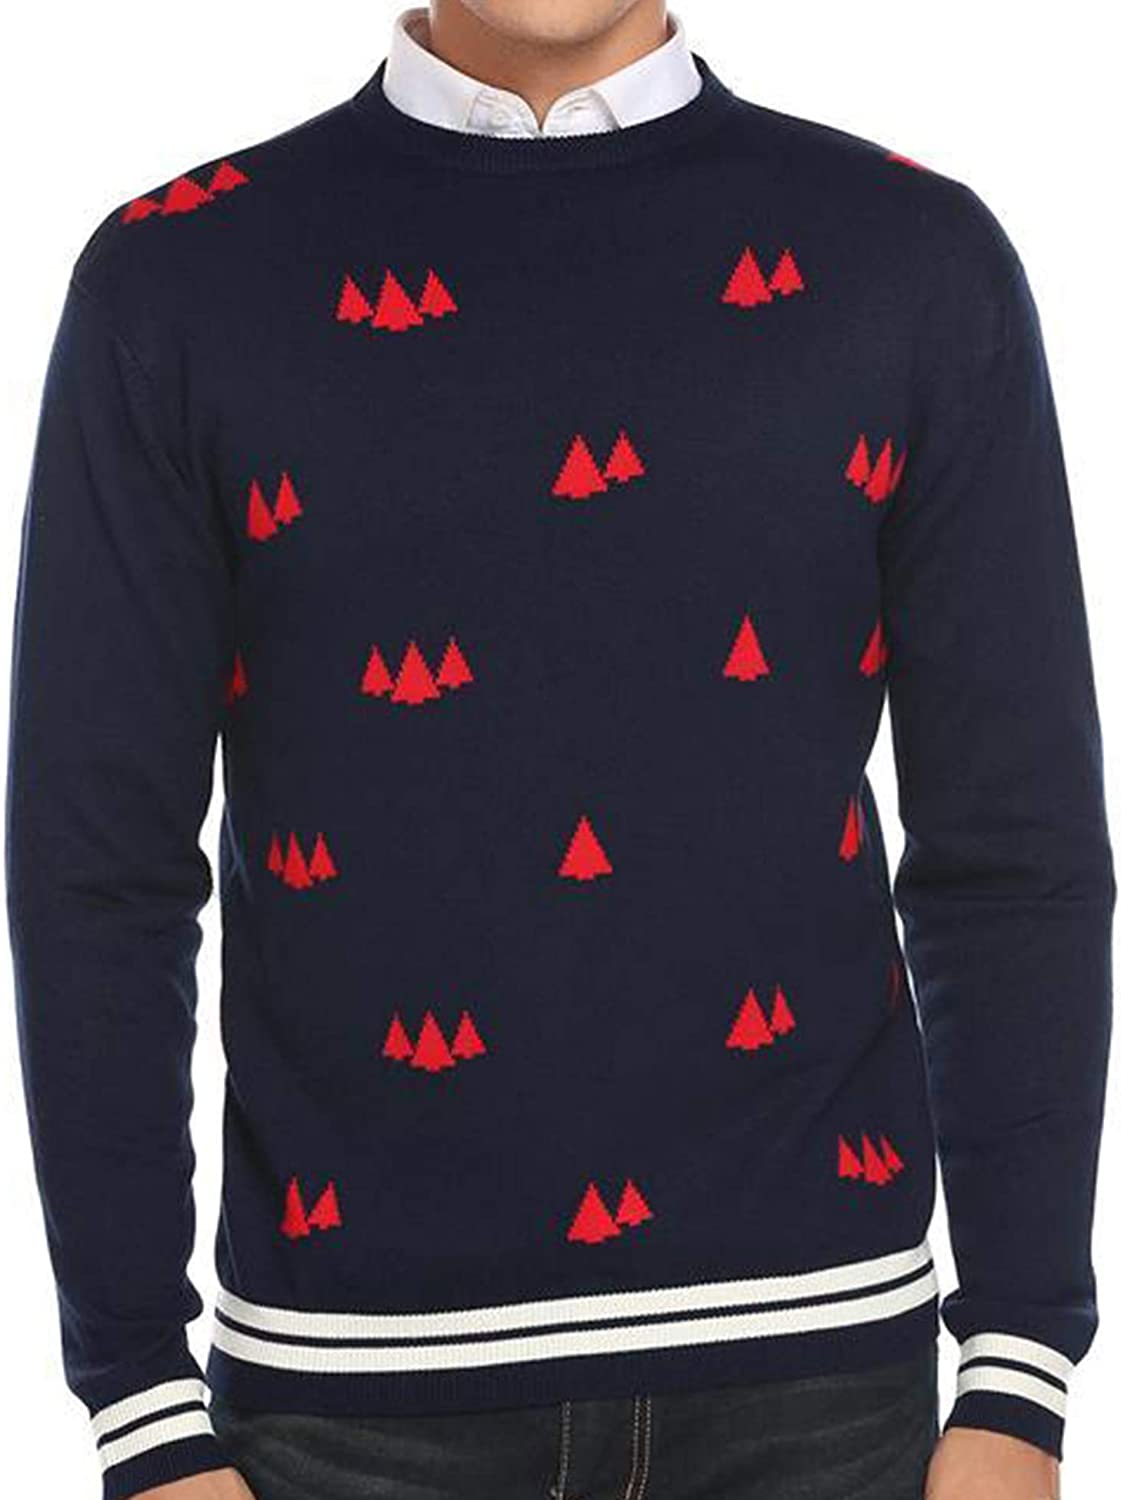 COOFANDY Men's Ugly Christmas Sweaters Knitted Long Sleeve Crewneck Pullovers (Navy Blue, XX-Large)